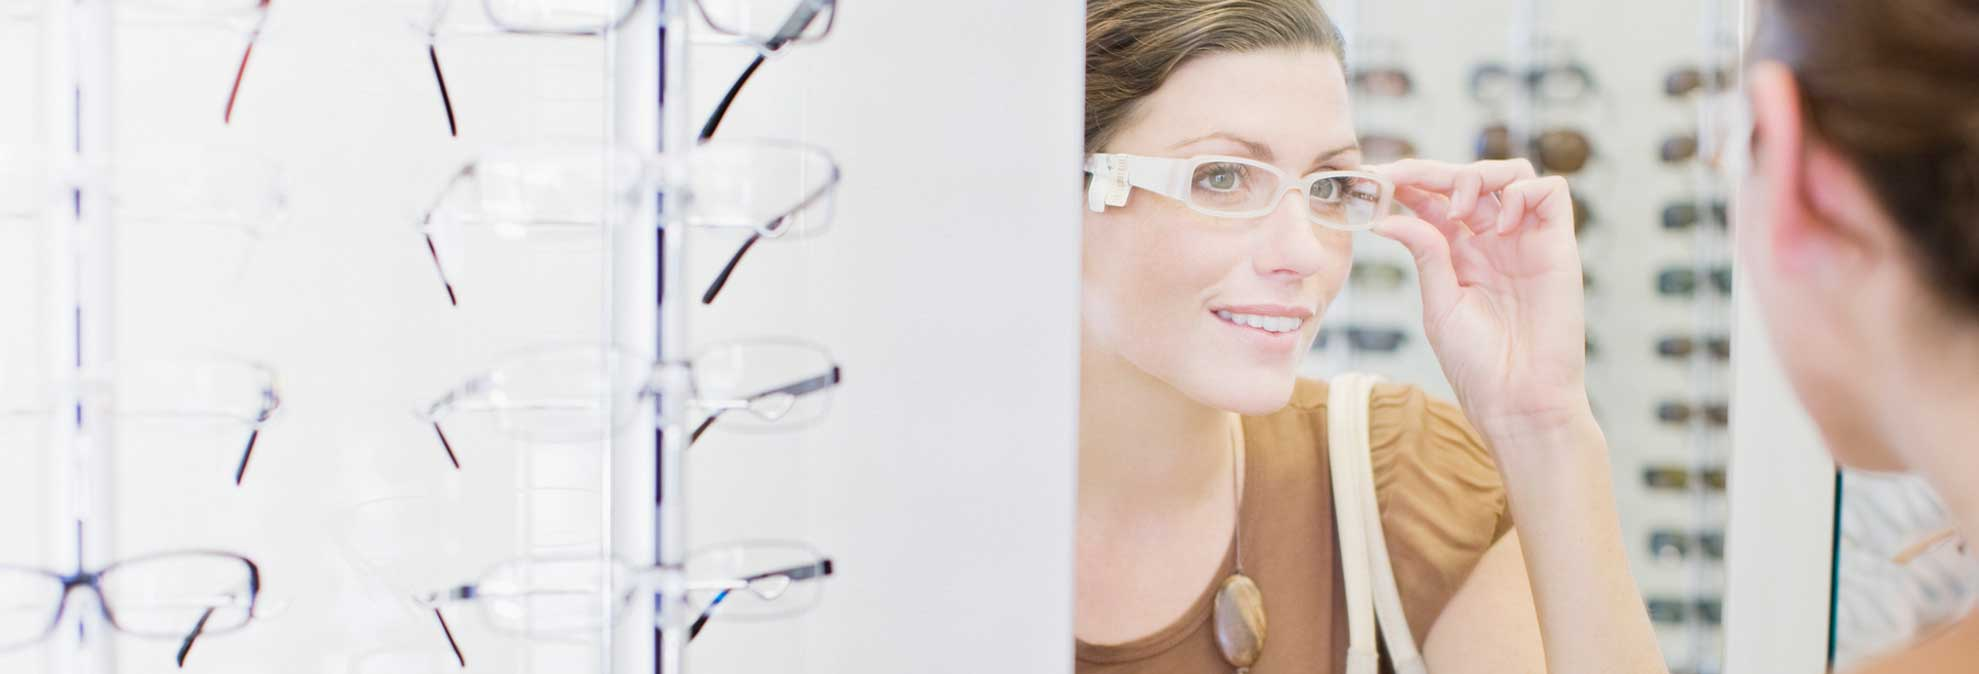 918e1847cb Best Eyeglass Store Buying Guide - Consumer Reports